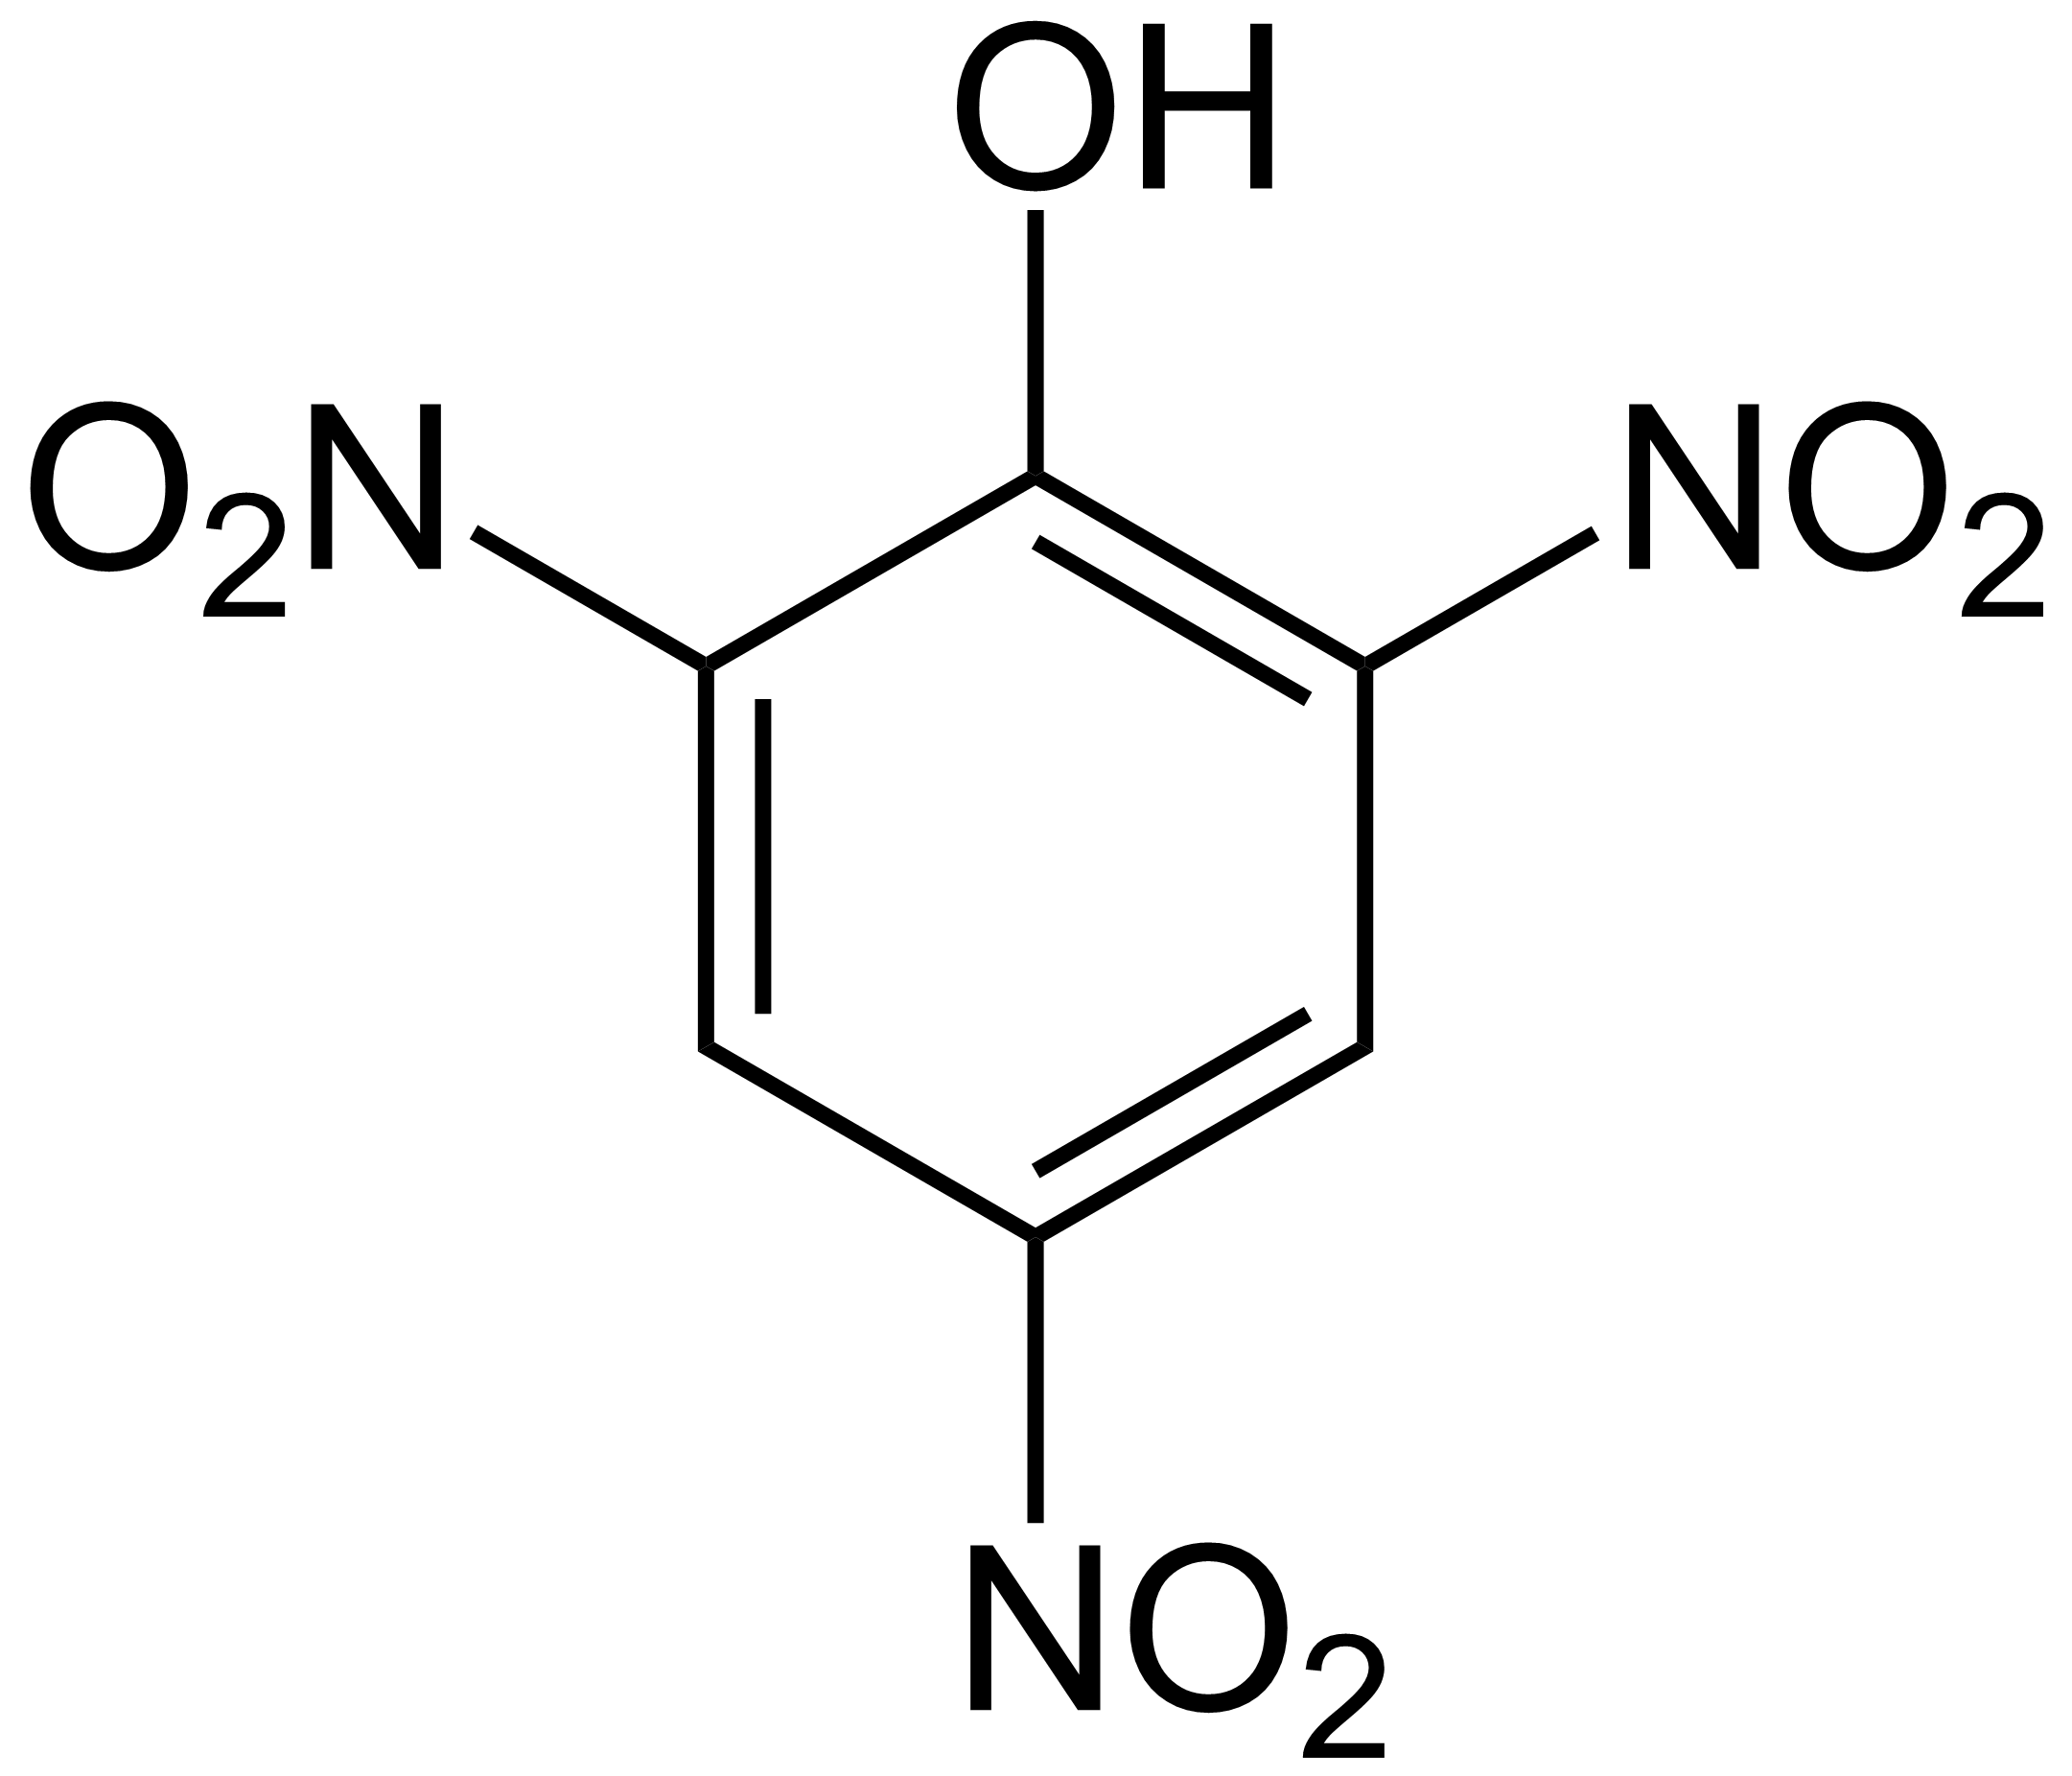 File:Picric acid.png - Wikimedia Commons